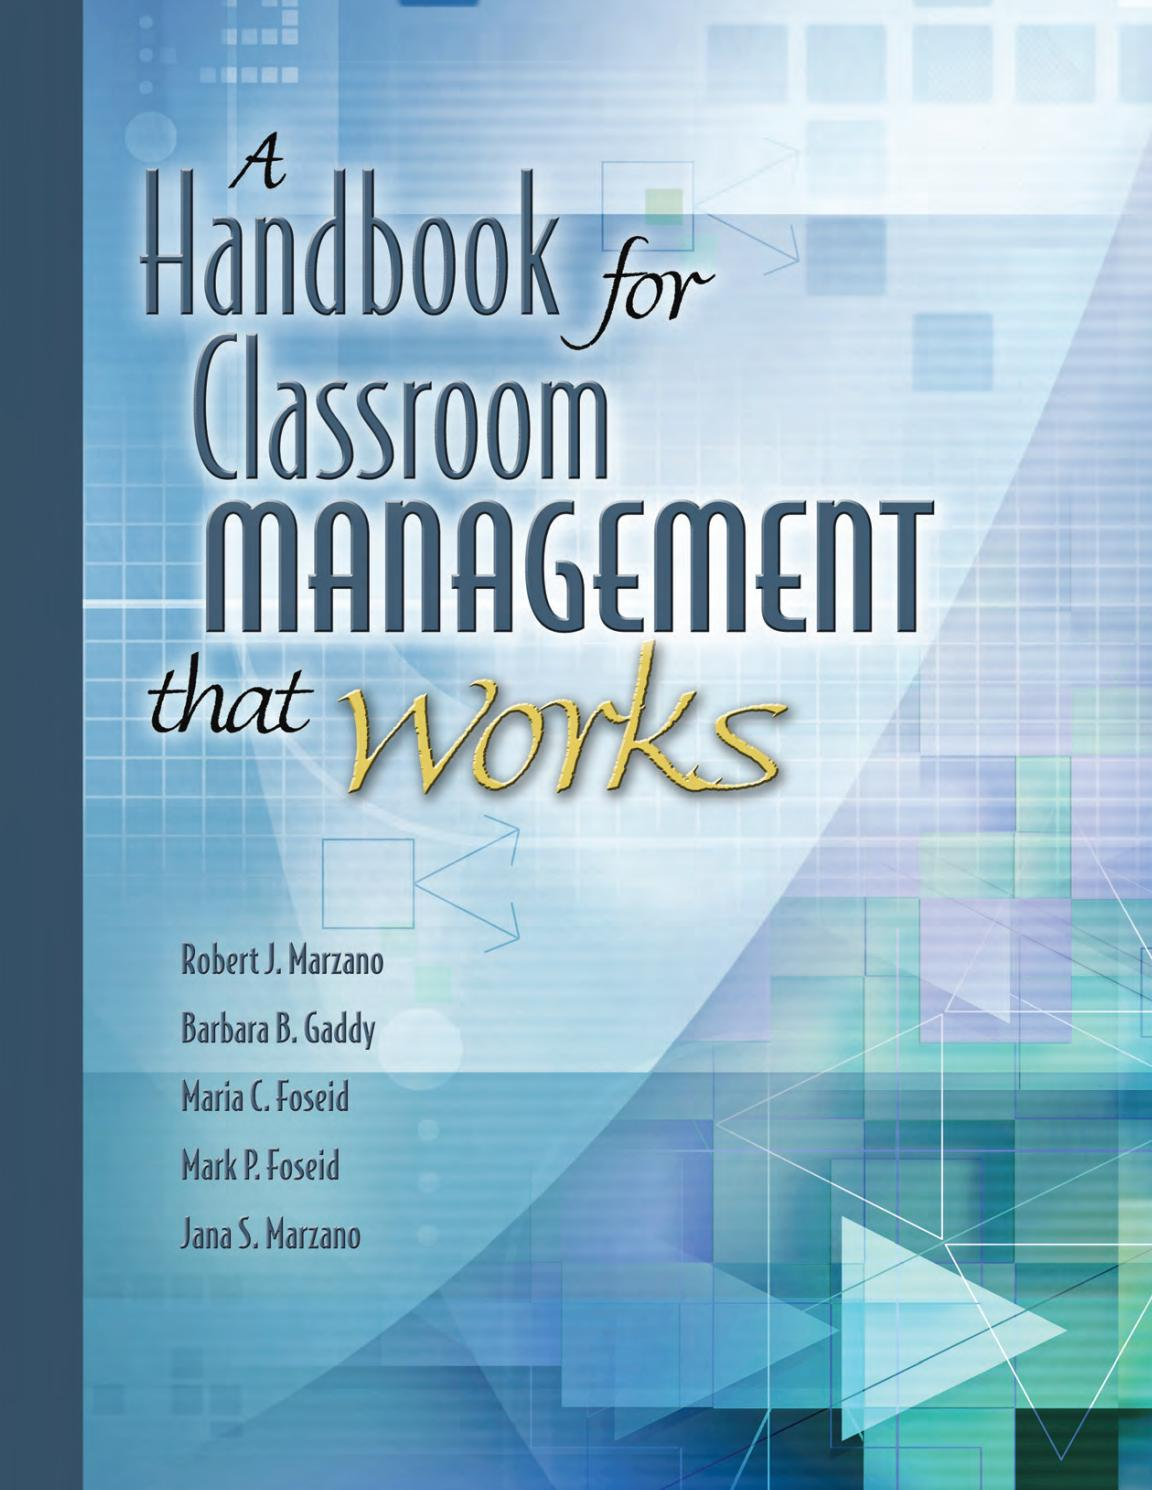 A habdbook for the classroom managment tht works by o.msameh - issuu